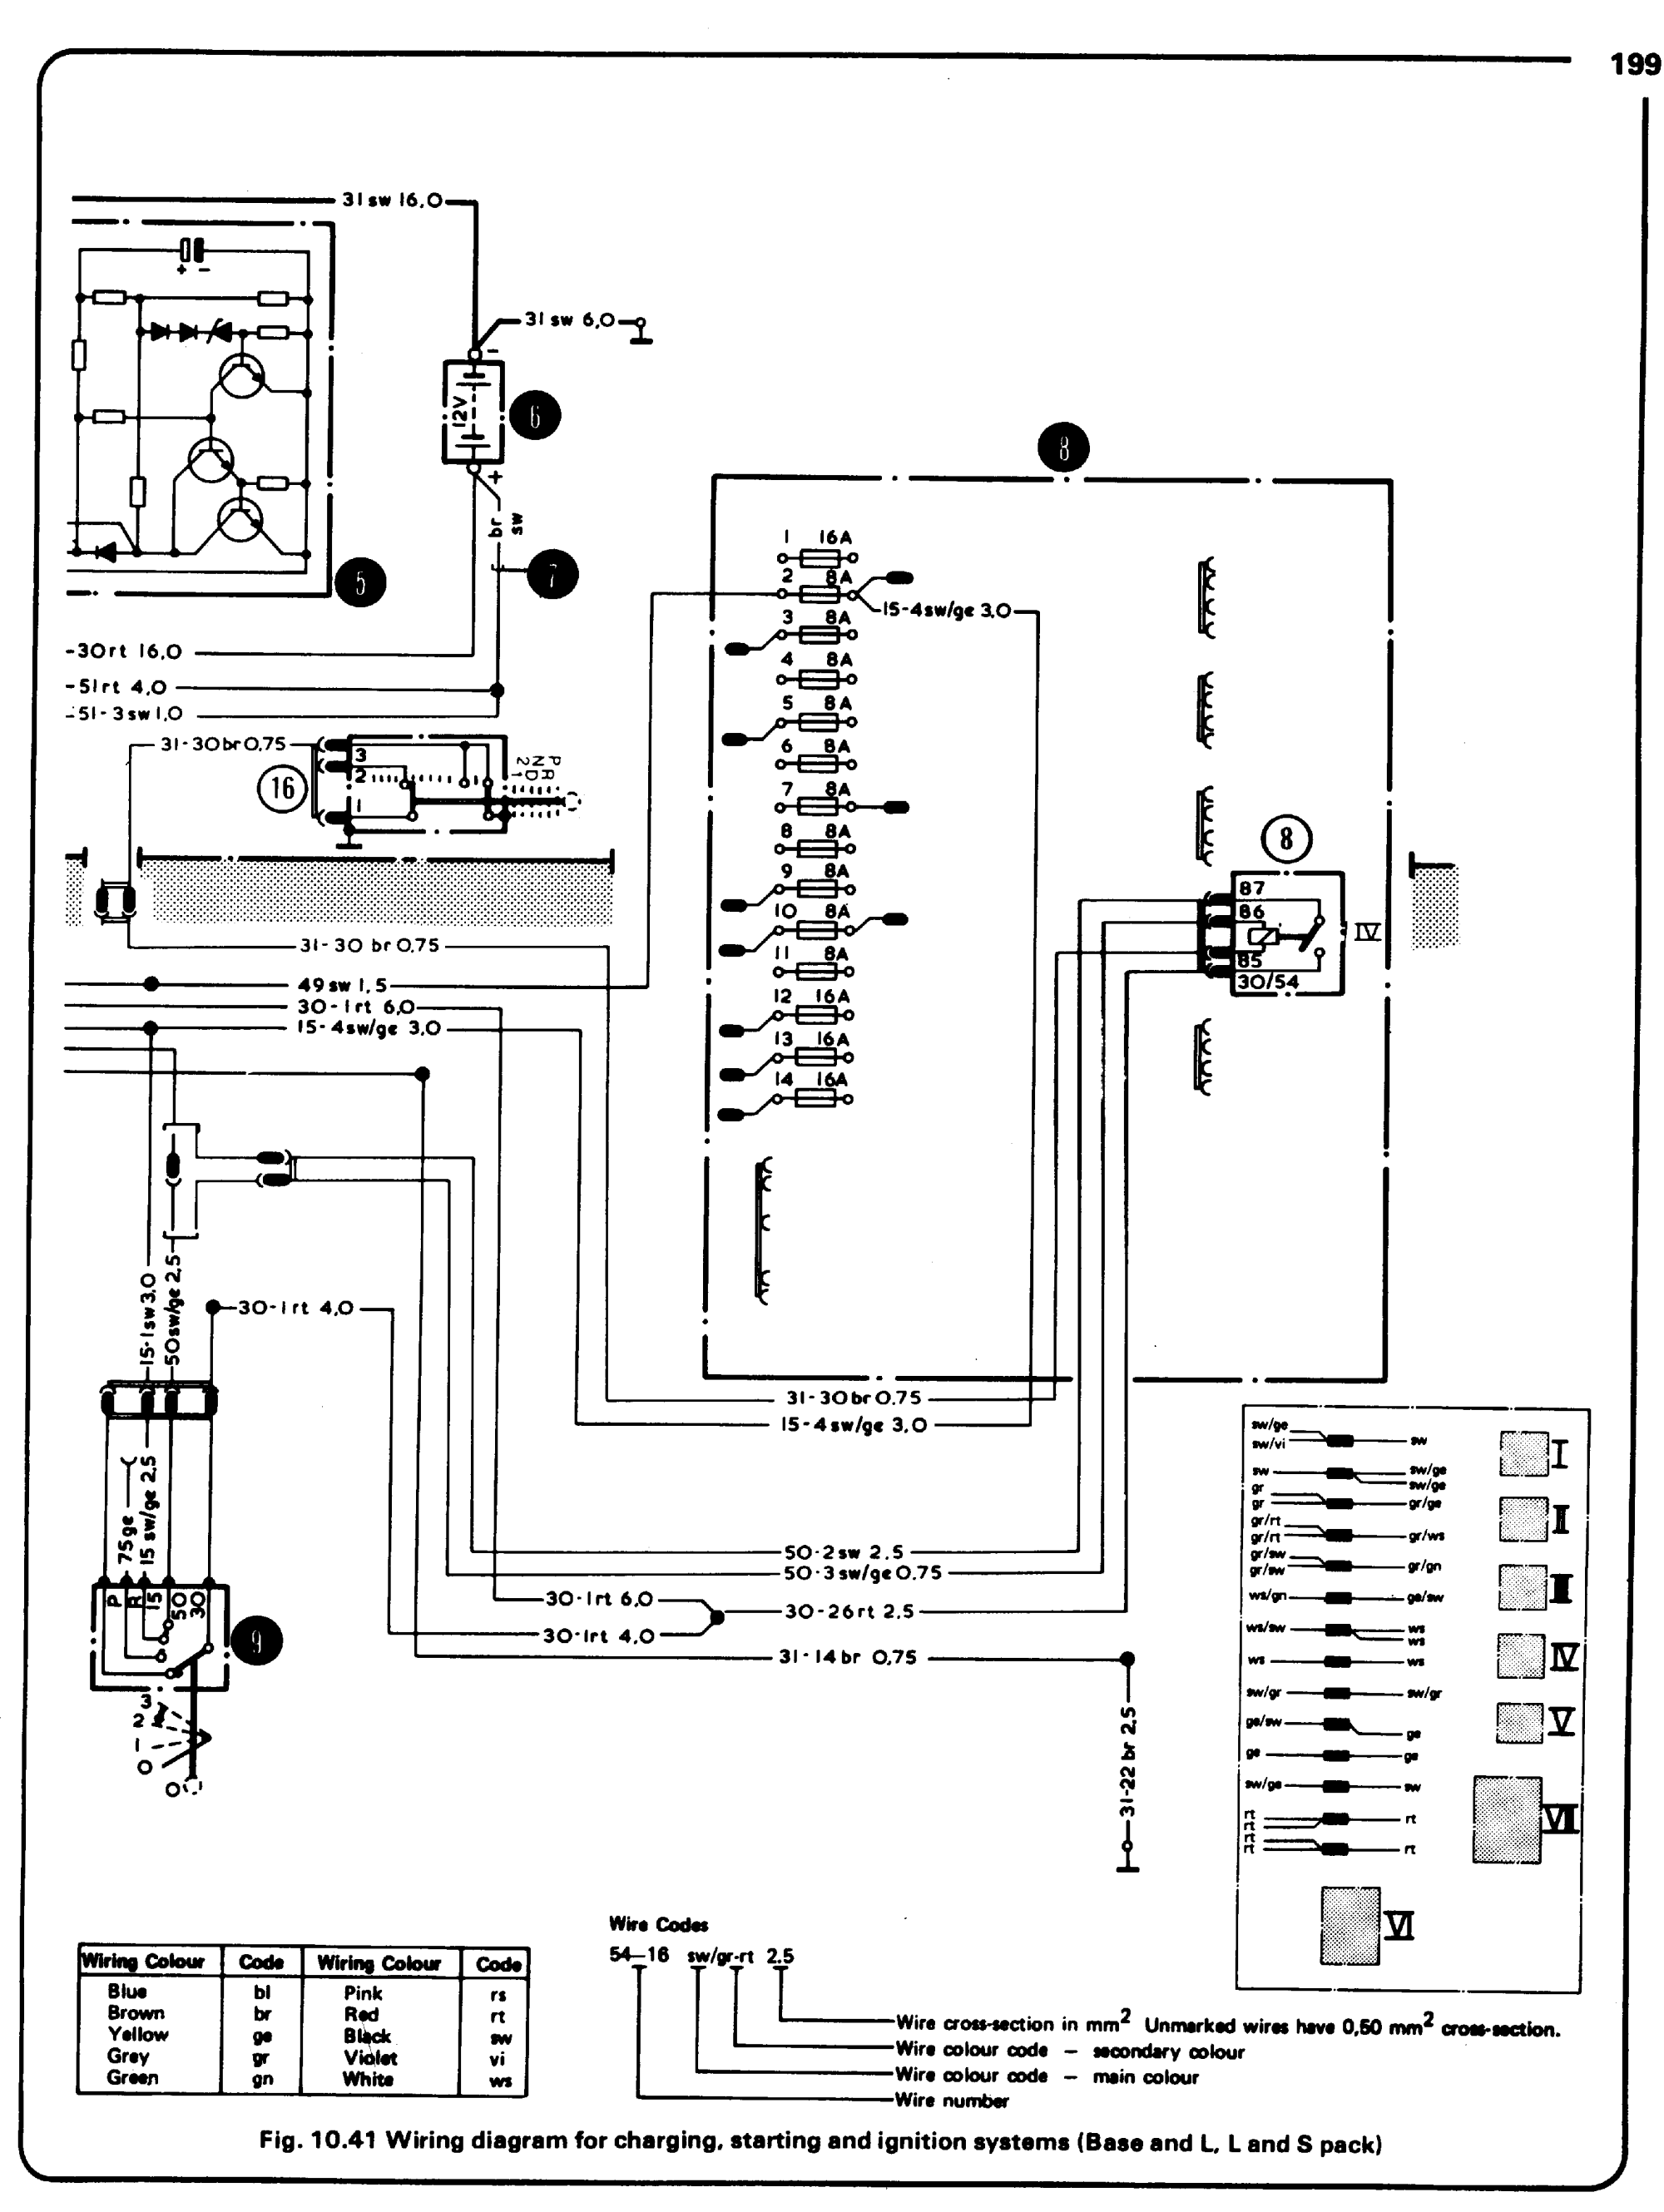 hight resolution of ignition diagram 1 102k extended wiring diagram ignition diagram 2 91k